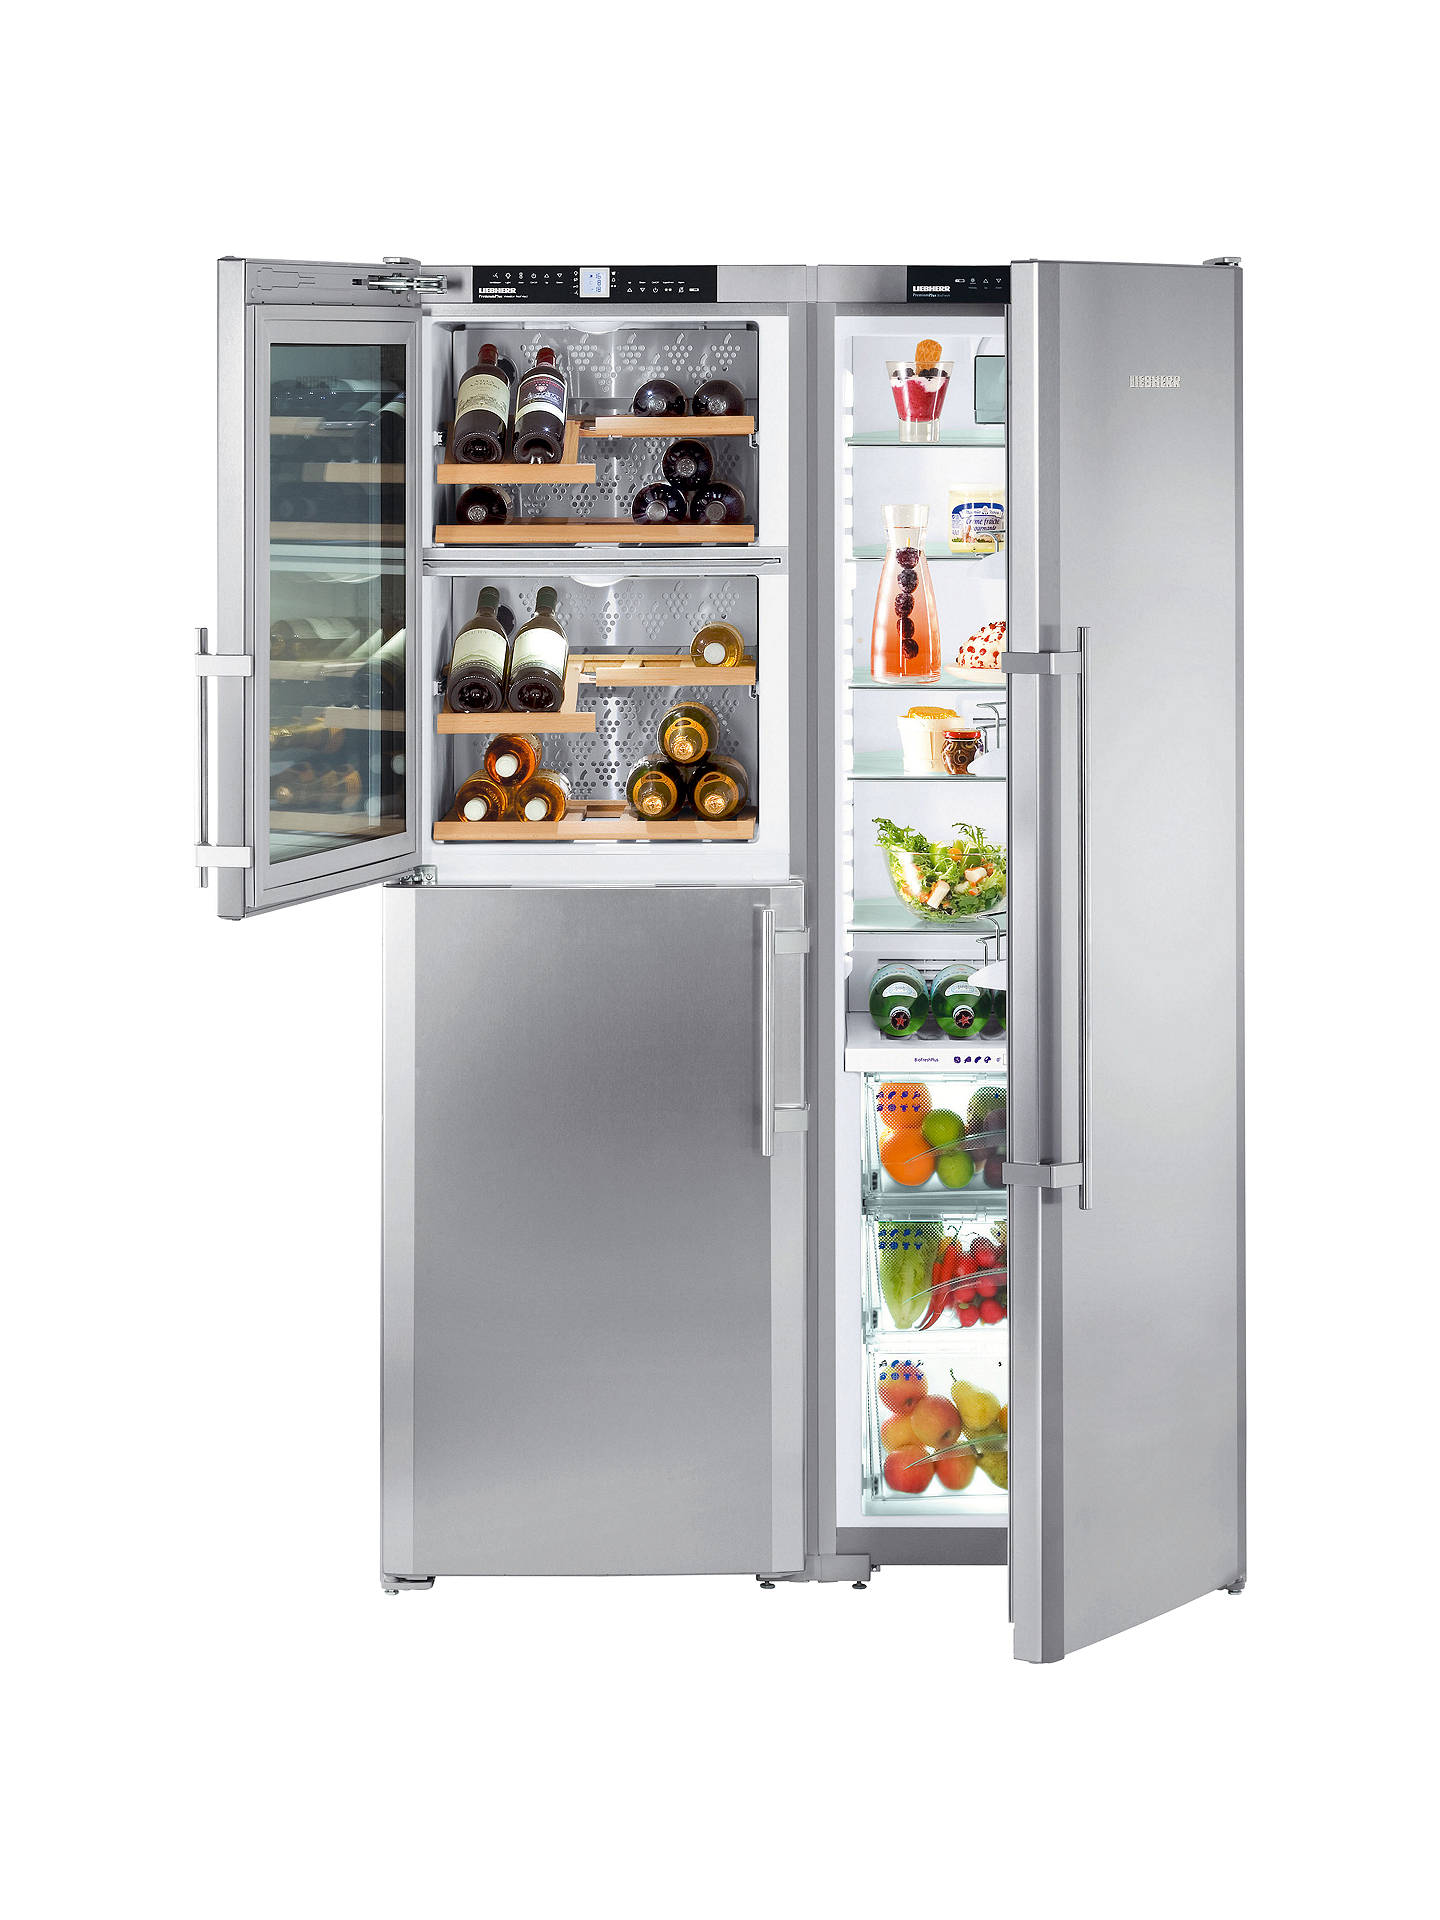 Is it worth investing in freezer cabinets, or is it better to limit to refrigerated cabinets 17